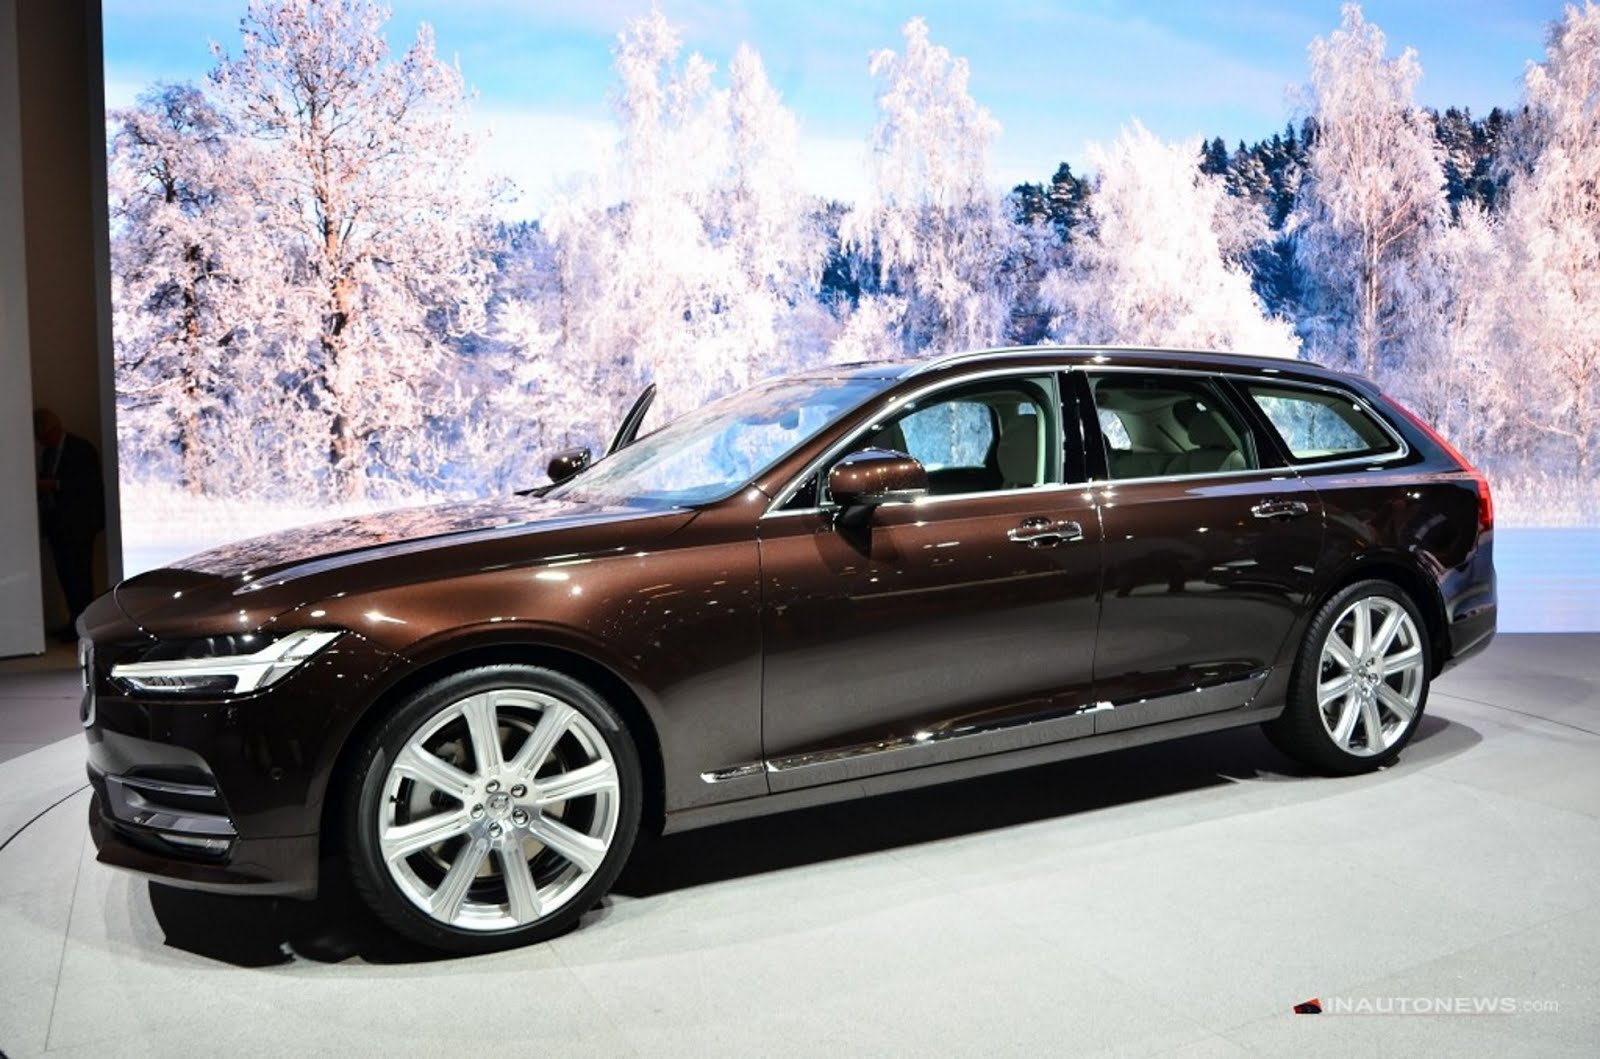 Of Volvo V90 Here Let S Focus On What We Are Actually Going To Drive Which Is A